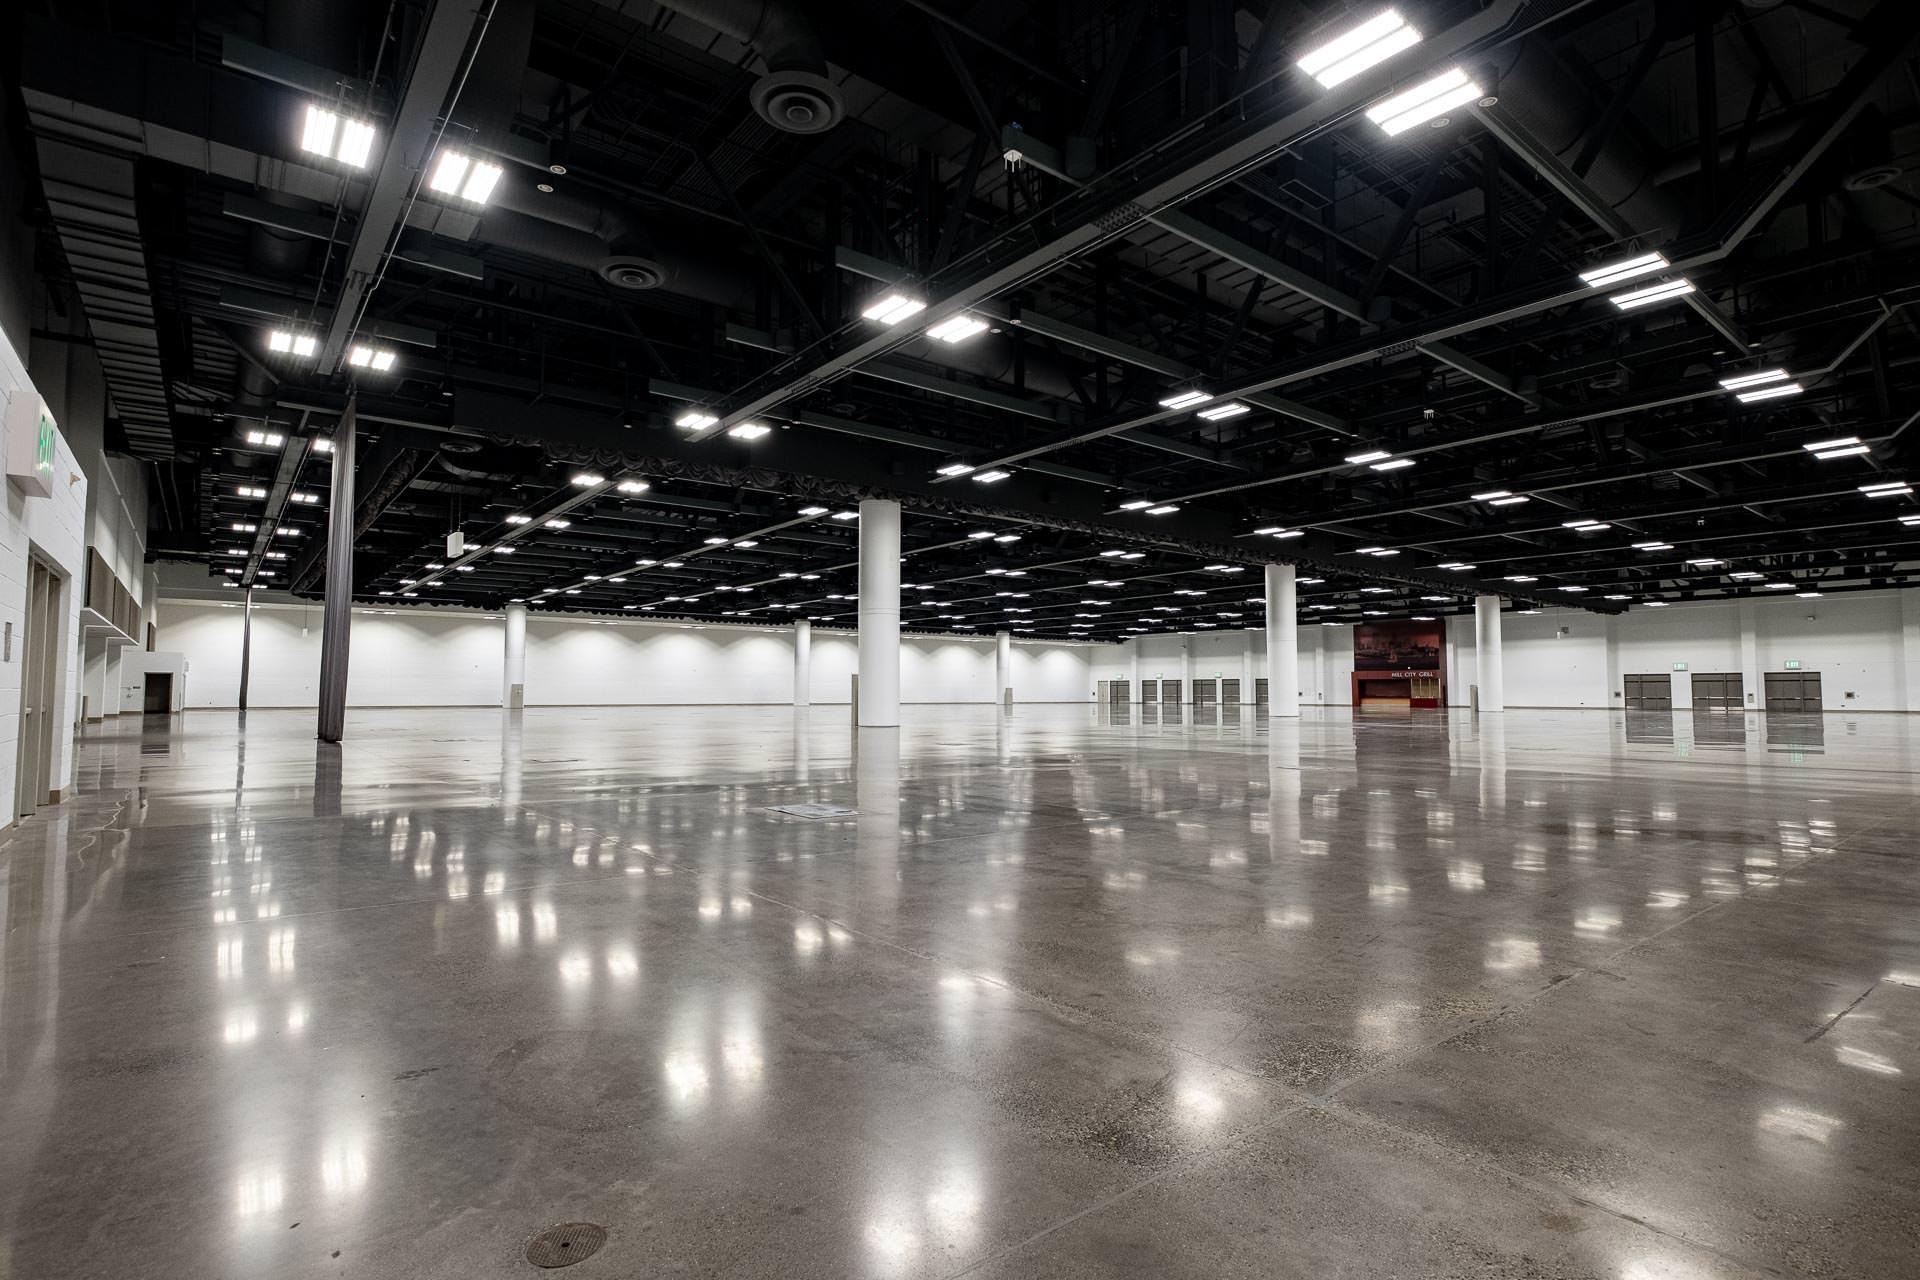 MCC_Exhibit-Hall-A_Web-Res_Tim-Madie-Photography_2019-8.jpg?mtime=20200306160819#asset:6294374